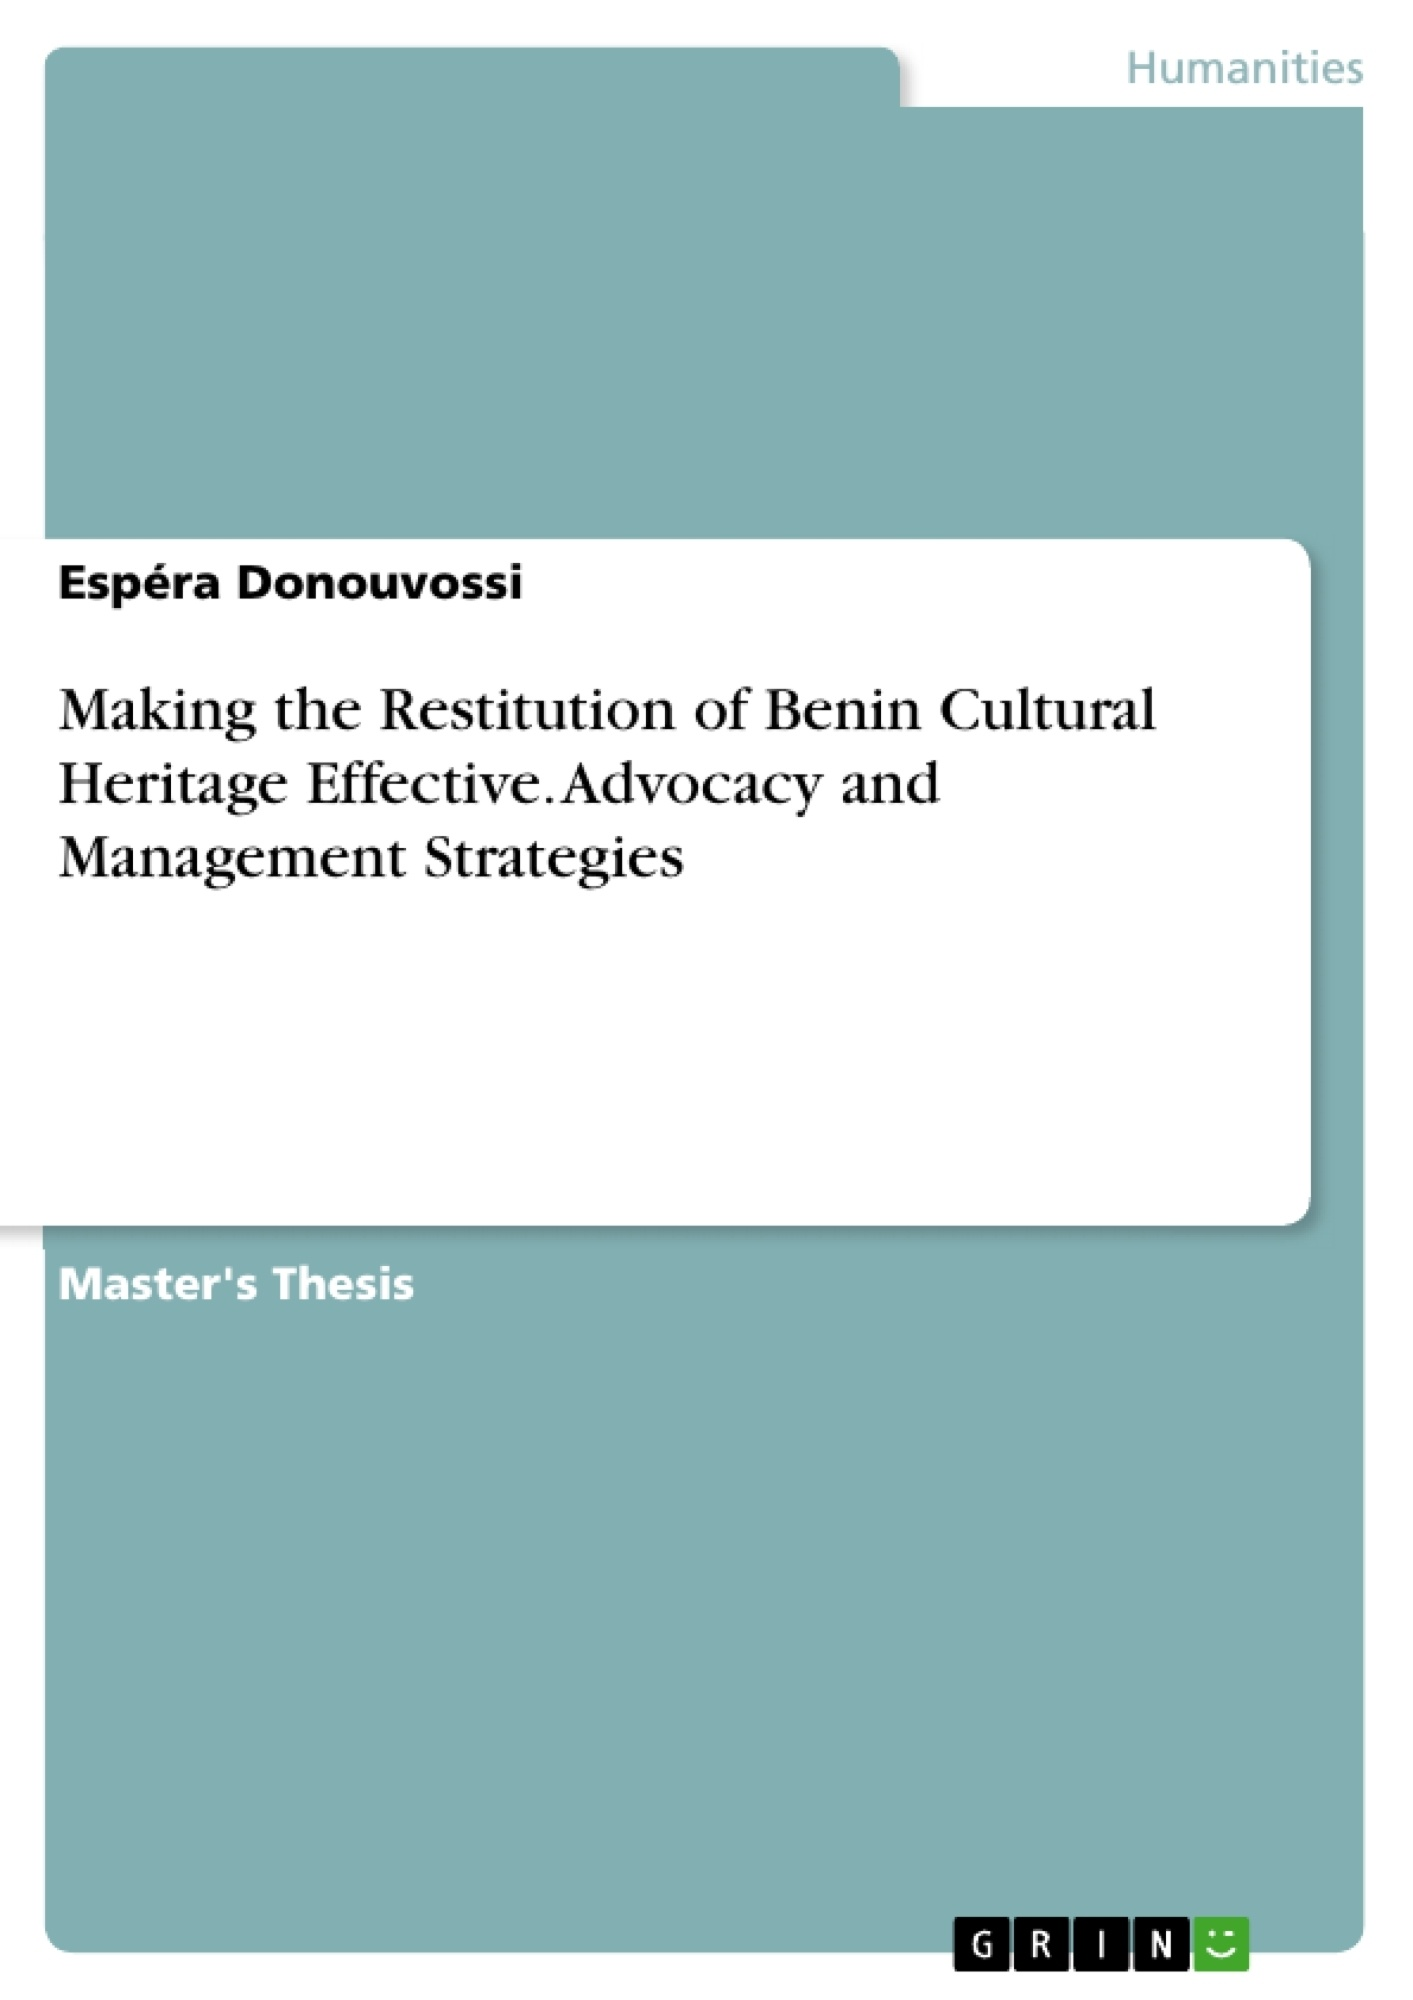 Title: Making the Restitution of Benin Cultural Heritage Effective. Advocacy and Management Strategies